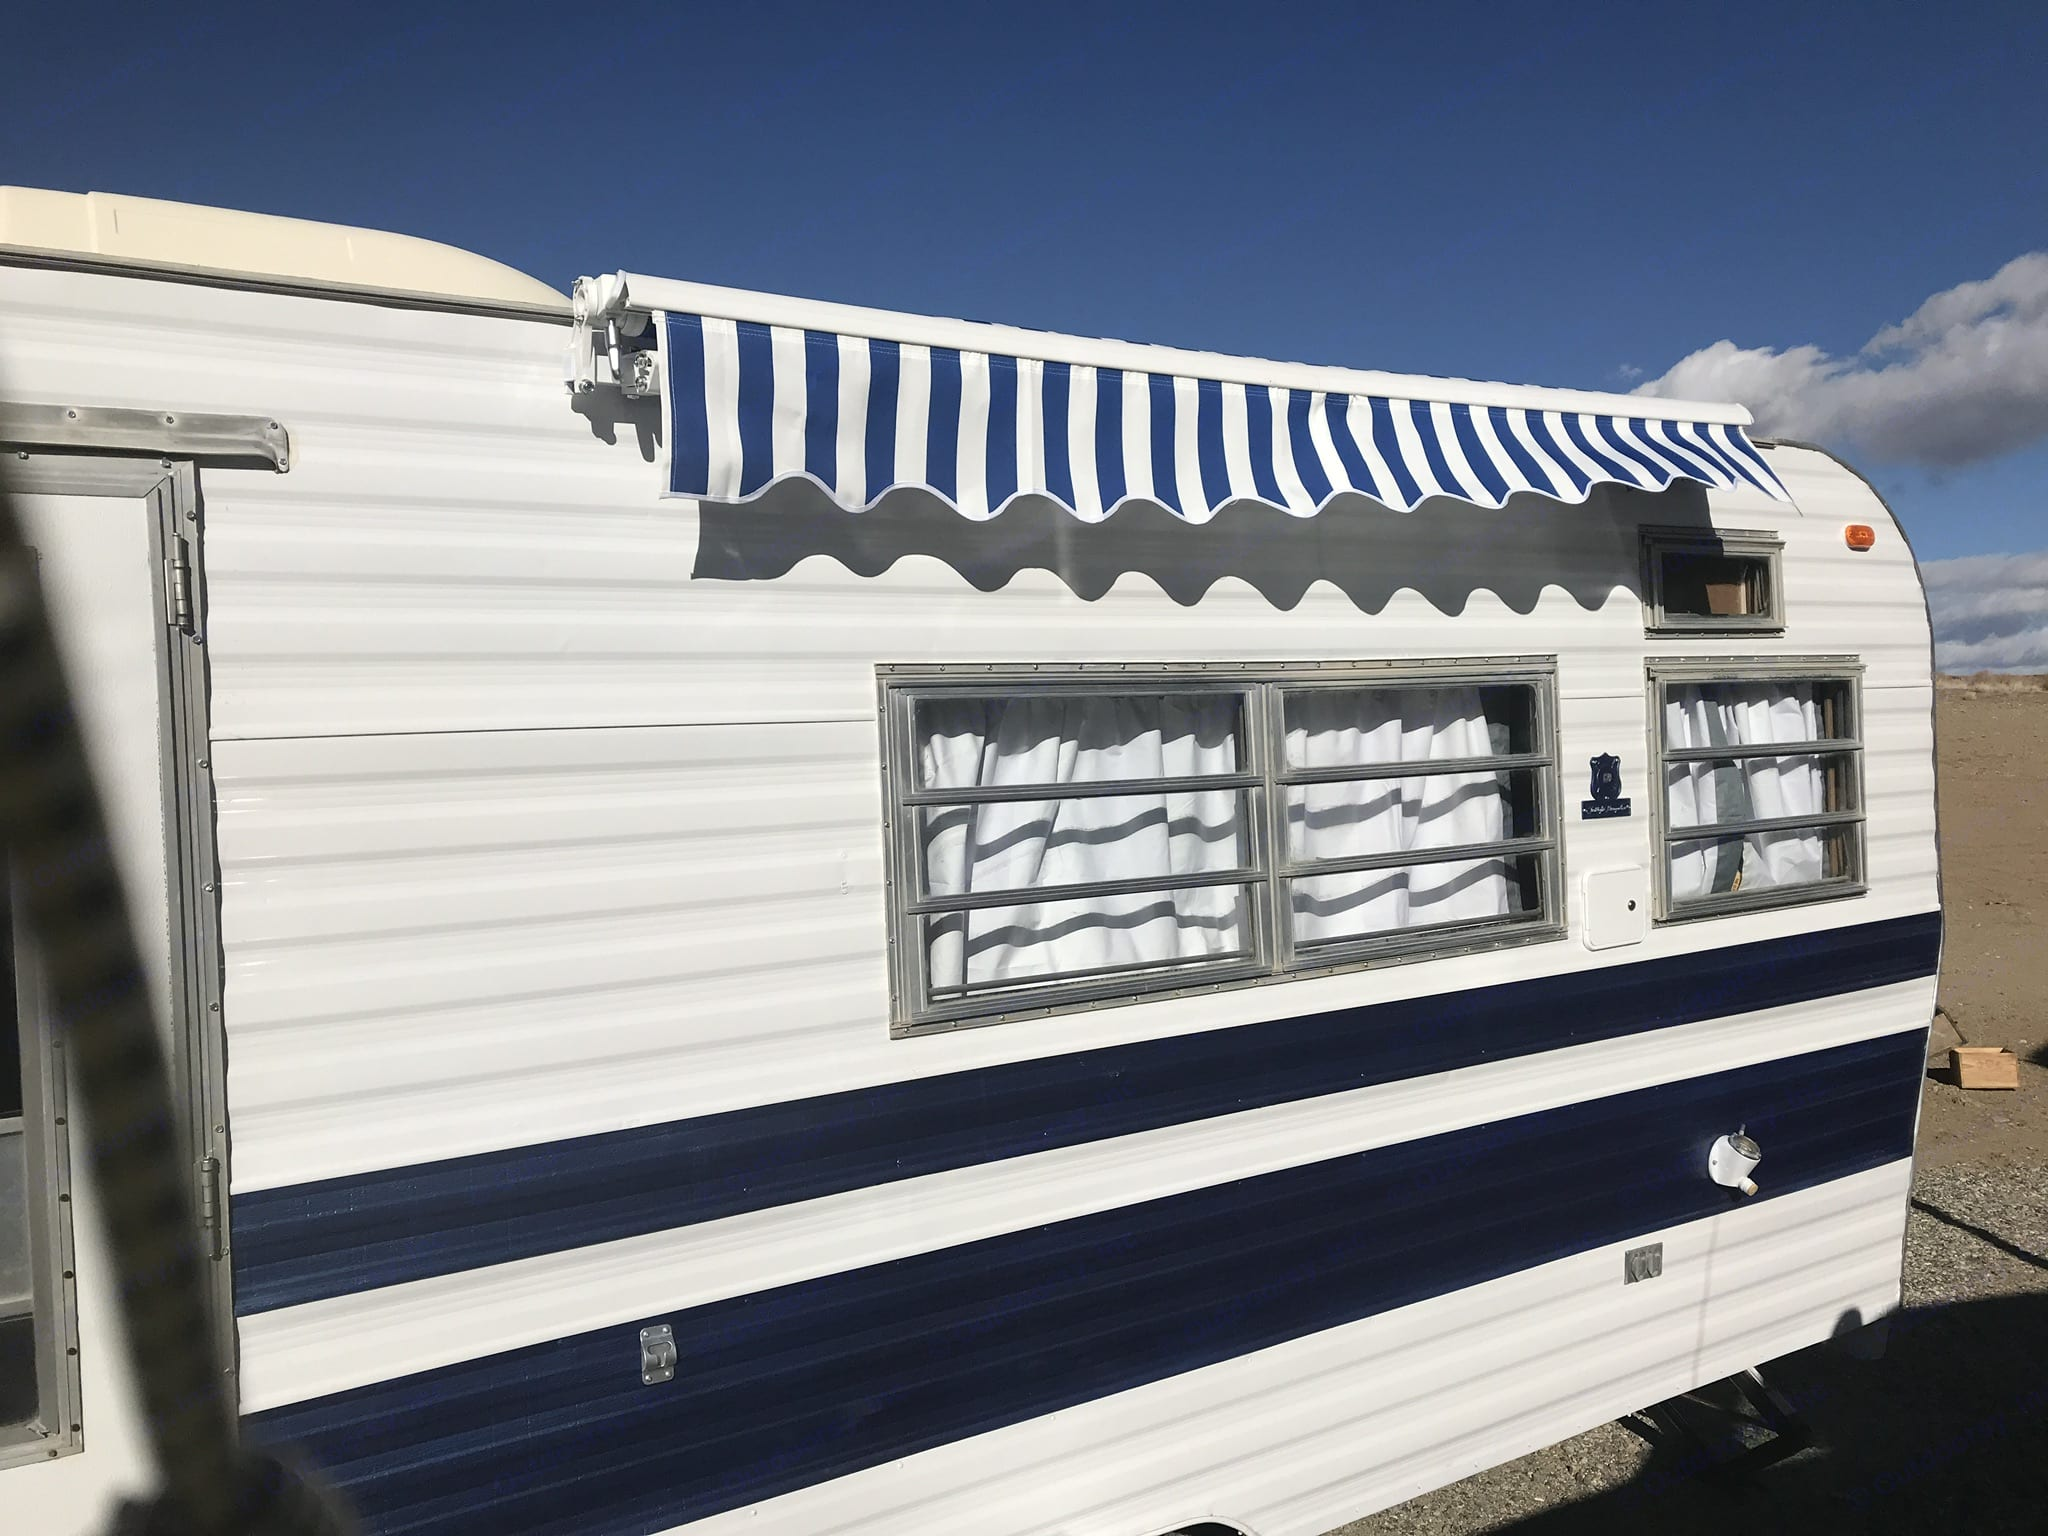 New awning & freshly painted exterior. Coleman twilight bungalo 1972